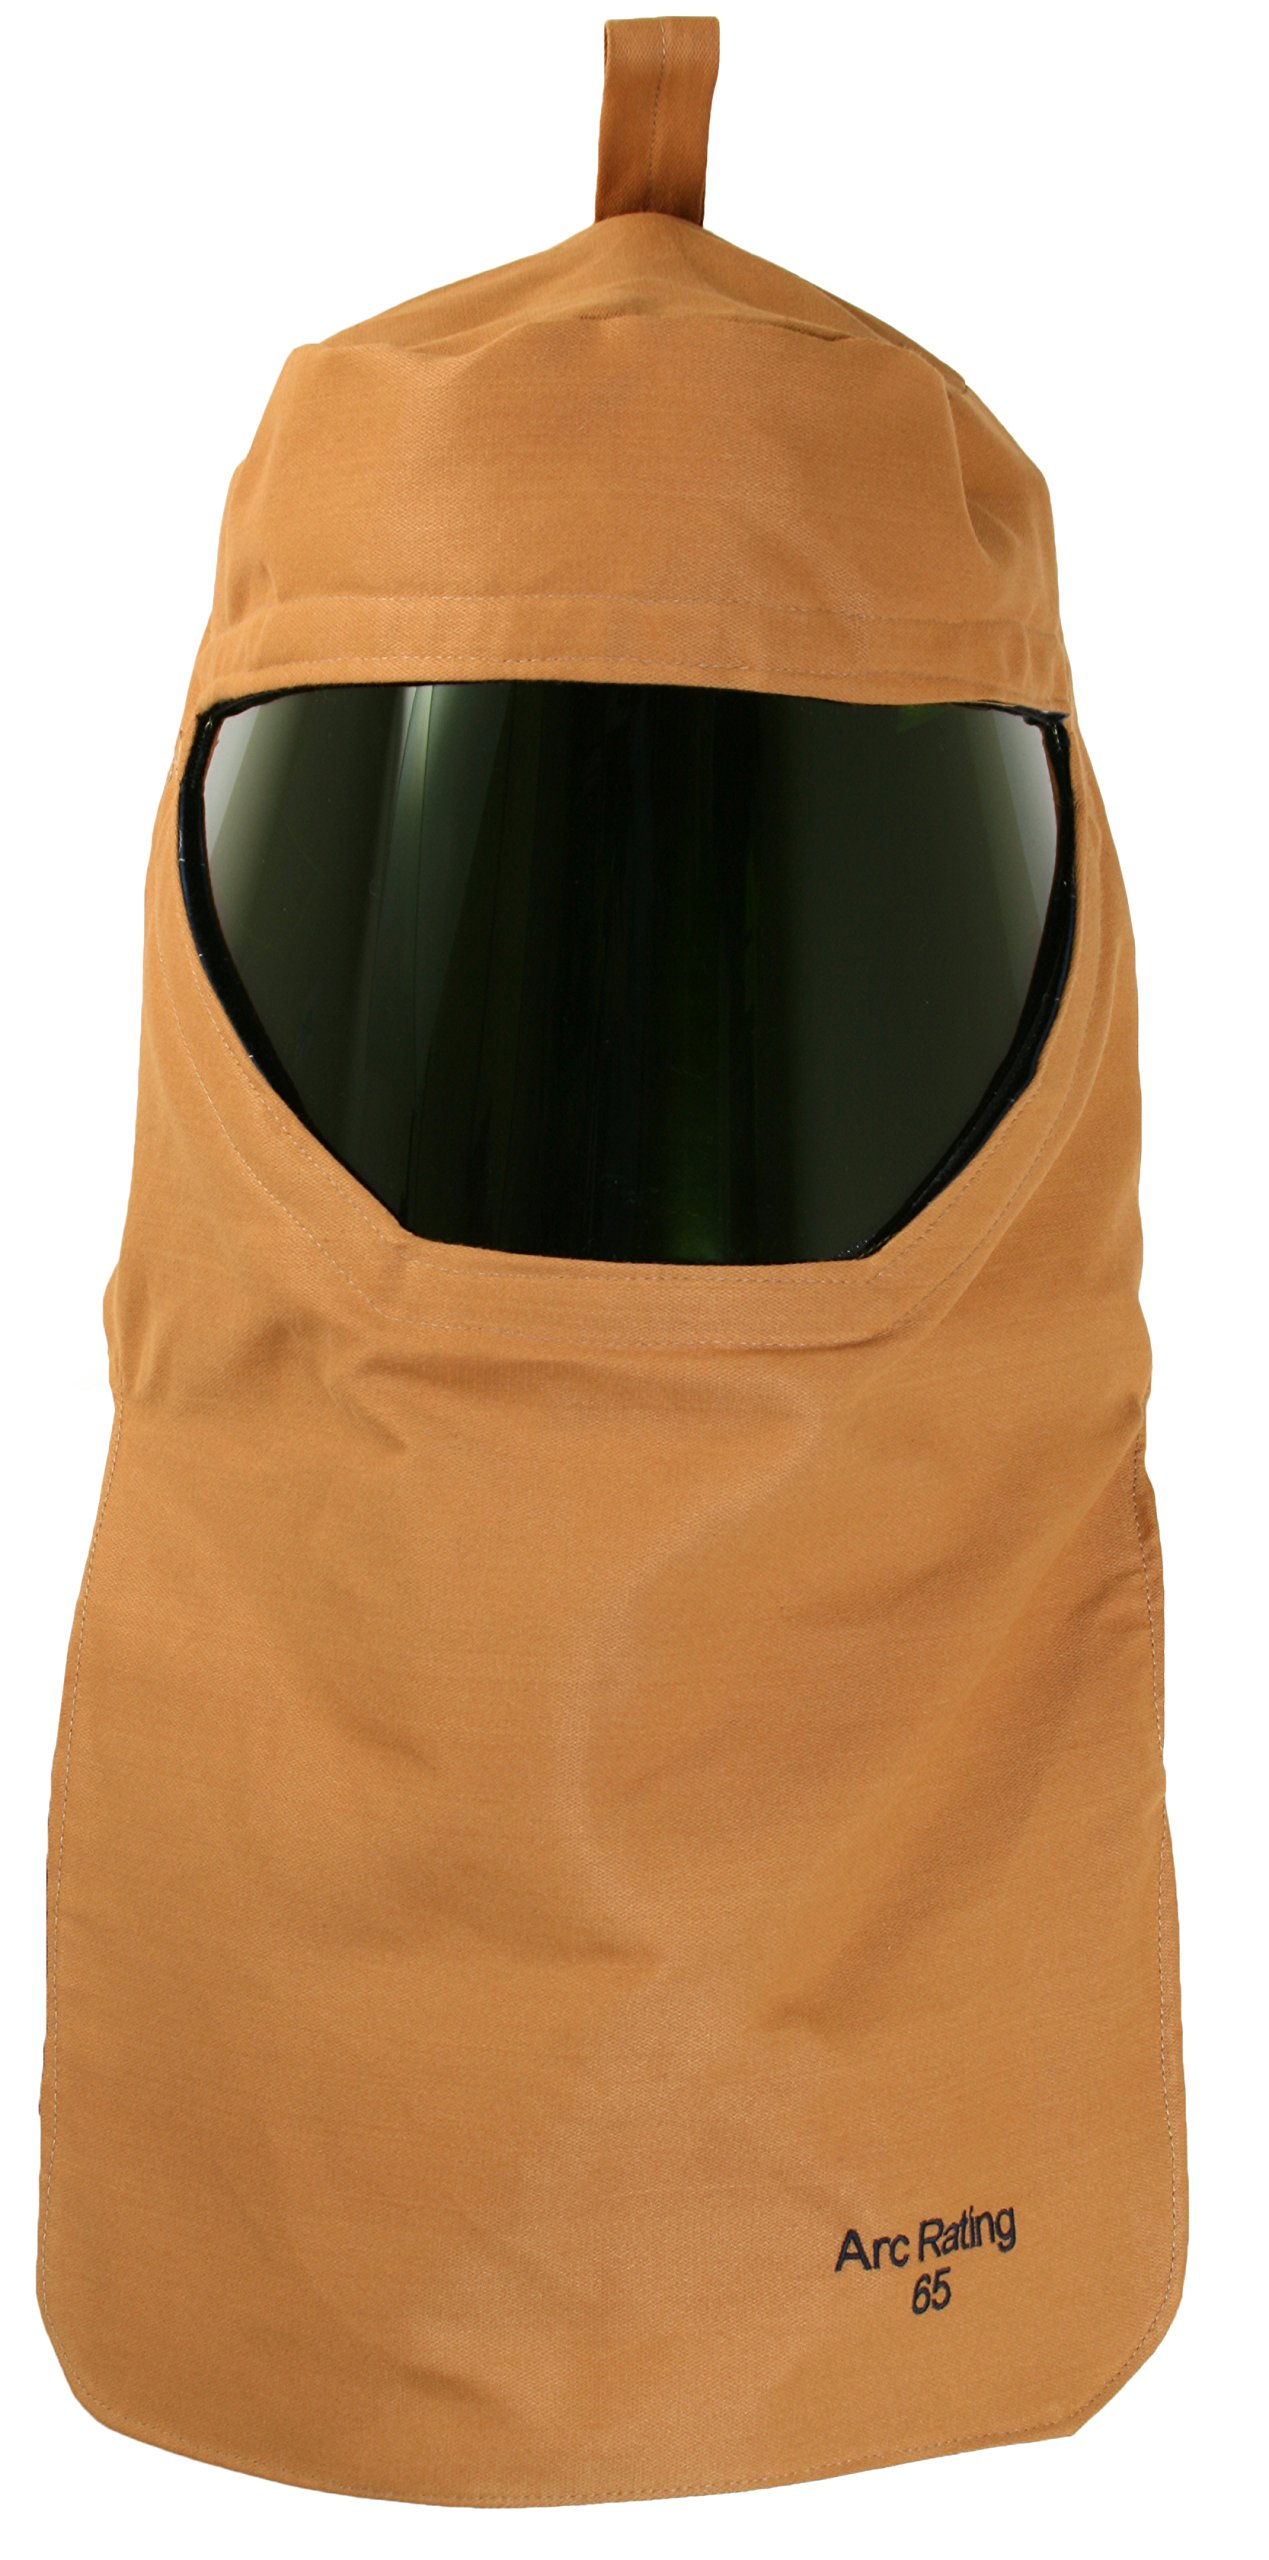 National Safety Apparel H65KDQTHH ArcGuard Arc Flash Hood with Universal Adapter, 65 Calorie, One Size, Caramel Brown